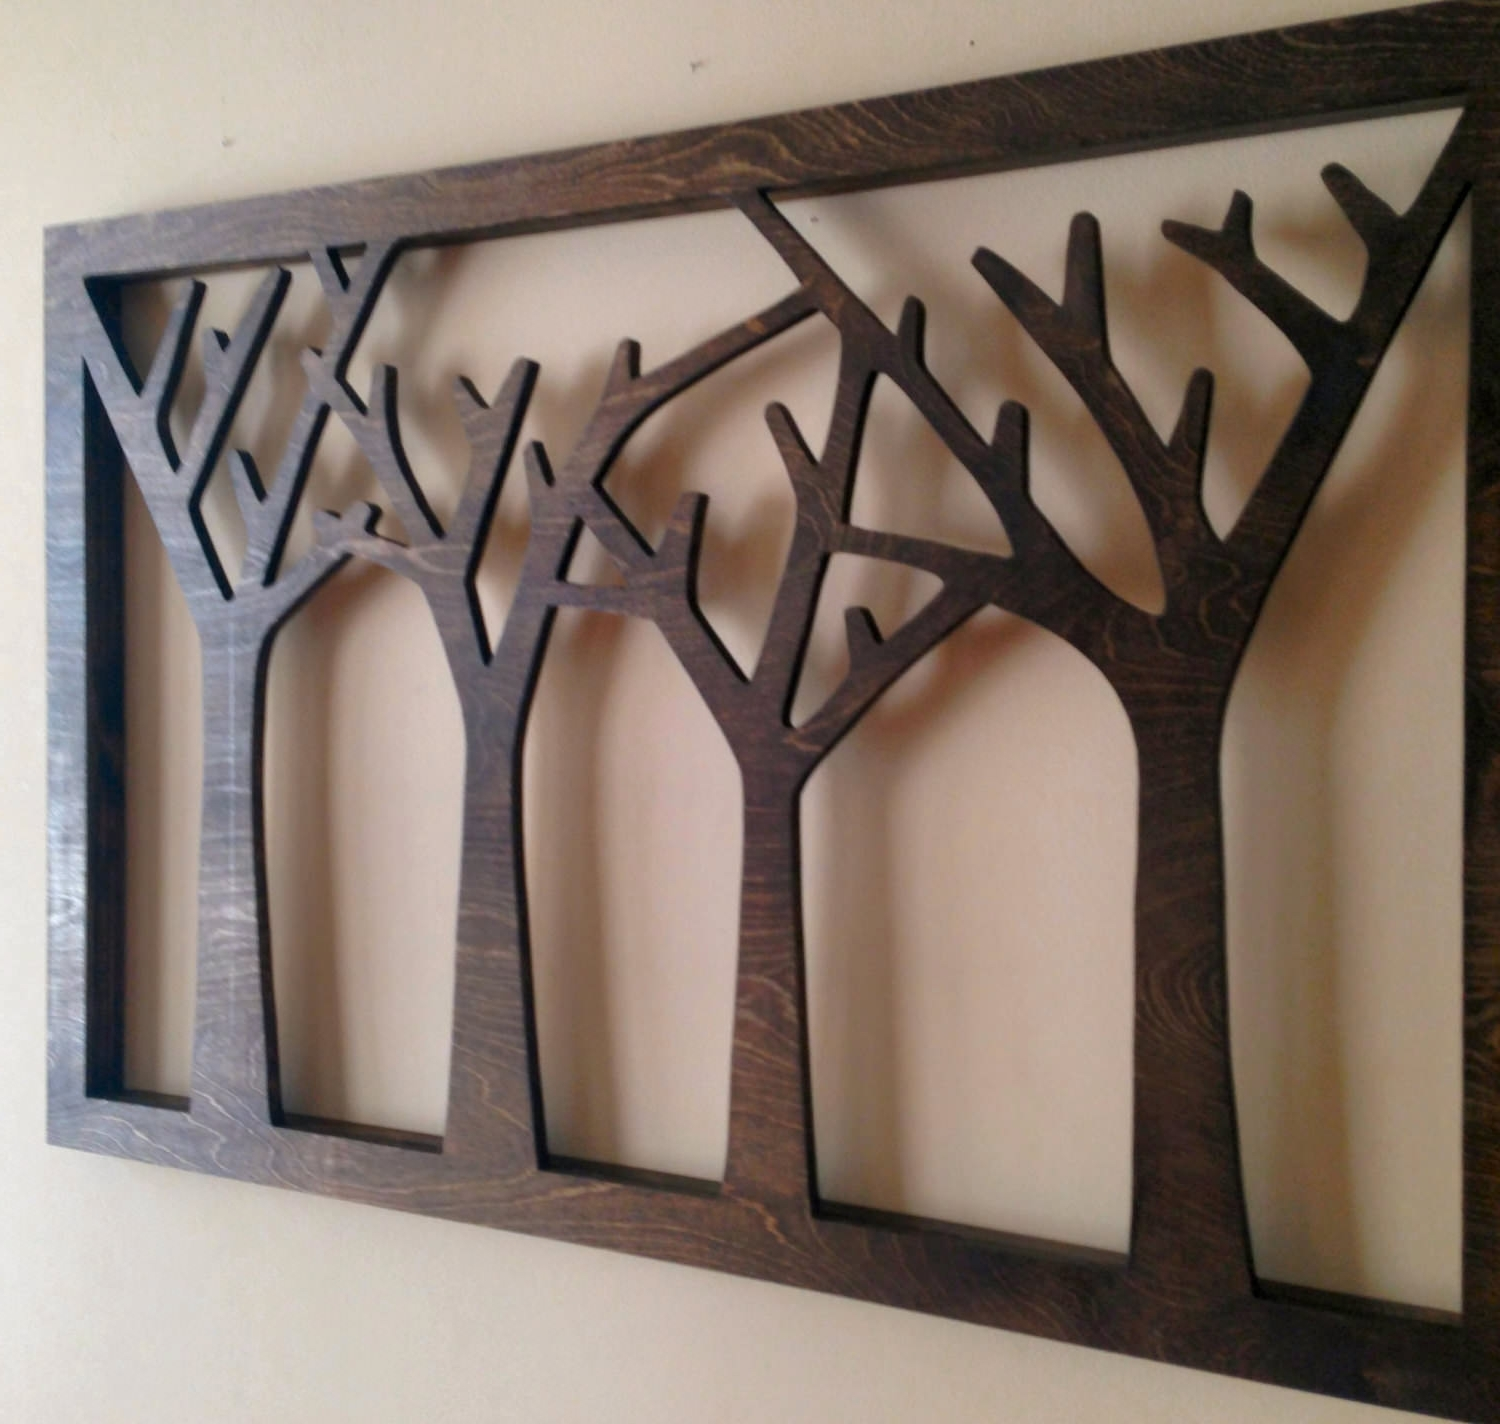 Newest 12+ Wood Wall Art Designs (Gallery 11 of 15)